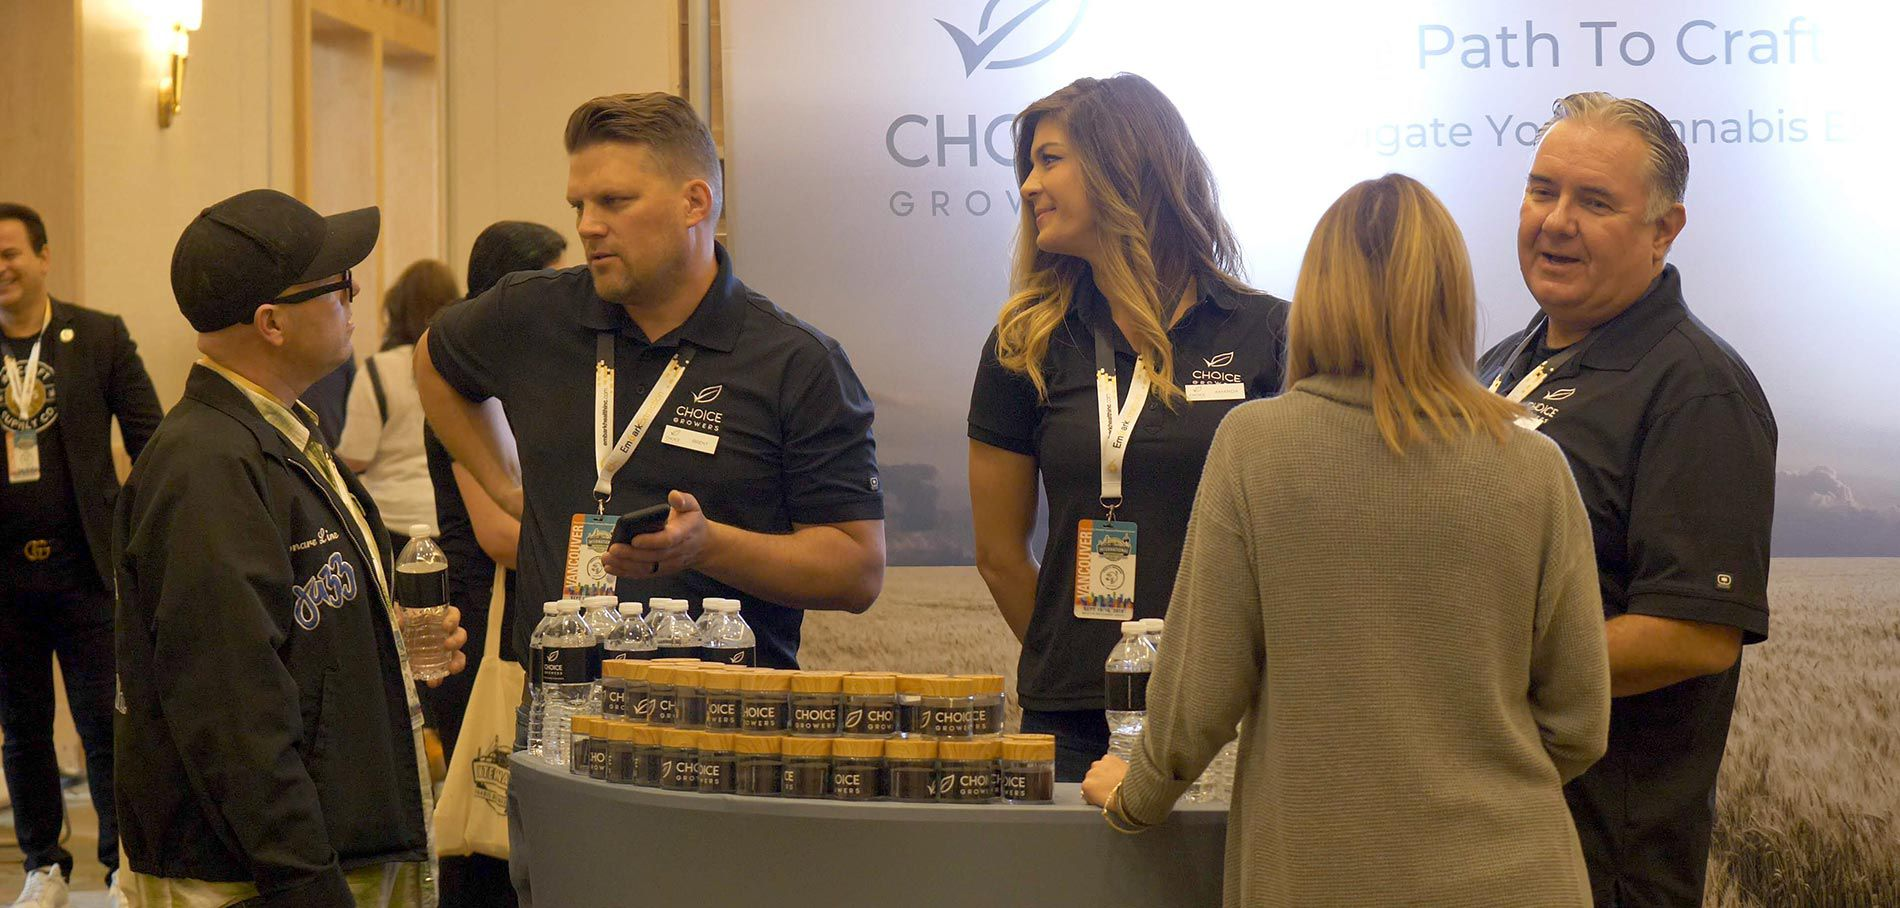 Choice Growers cannabis exhibitor booth